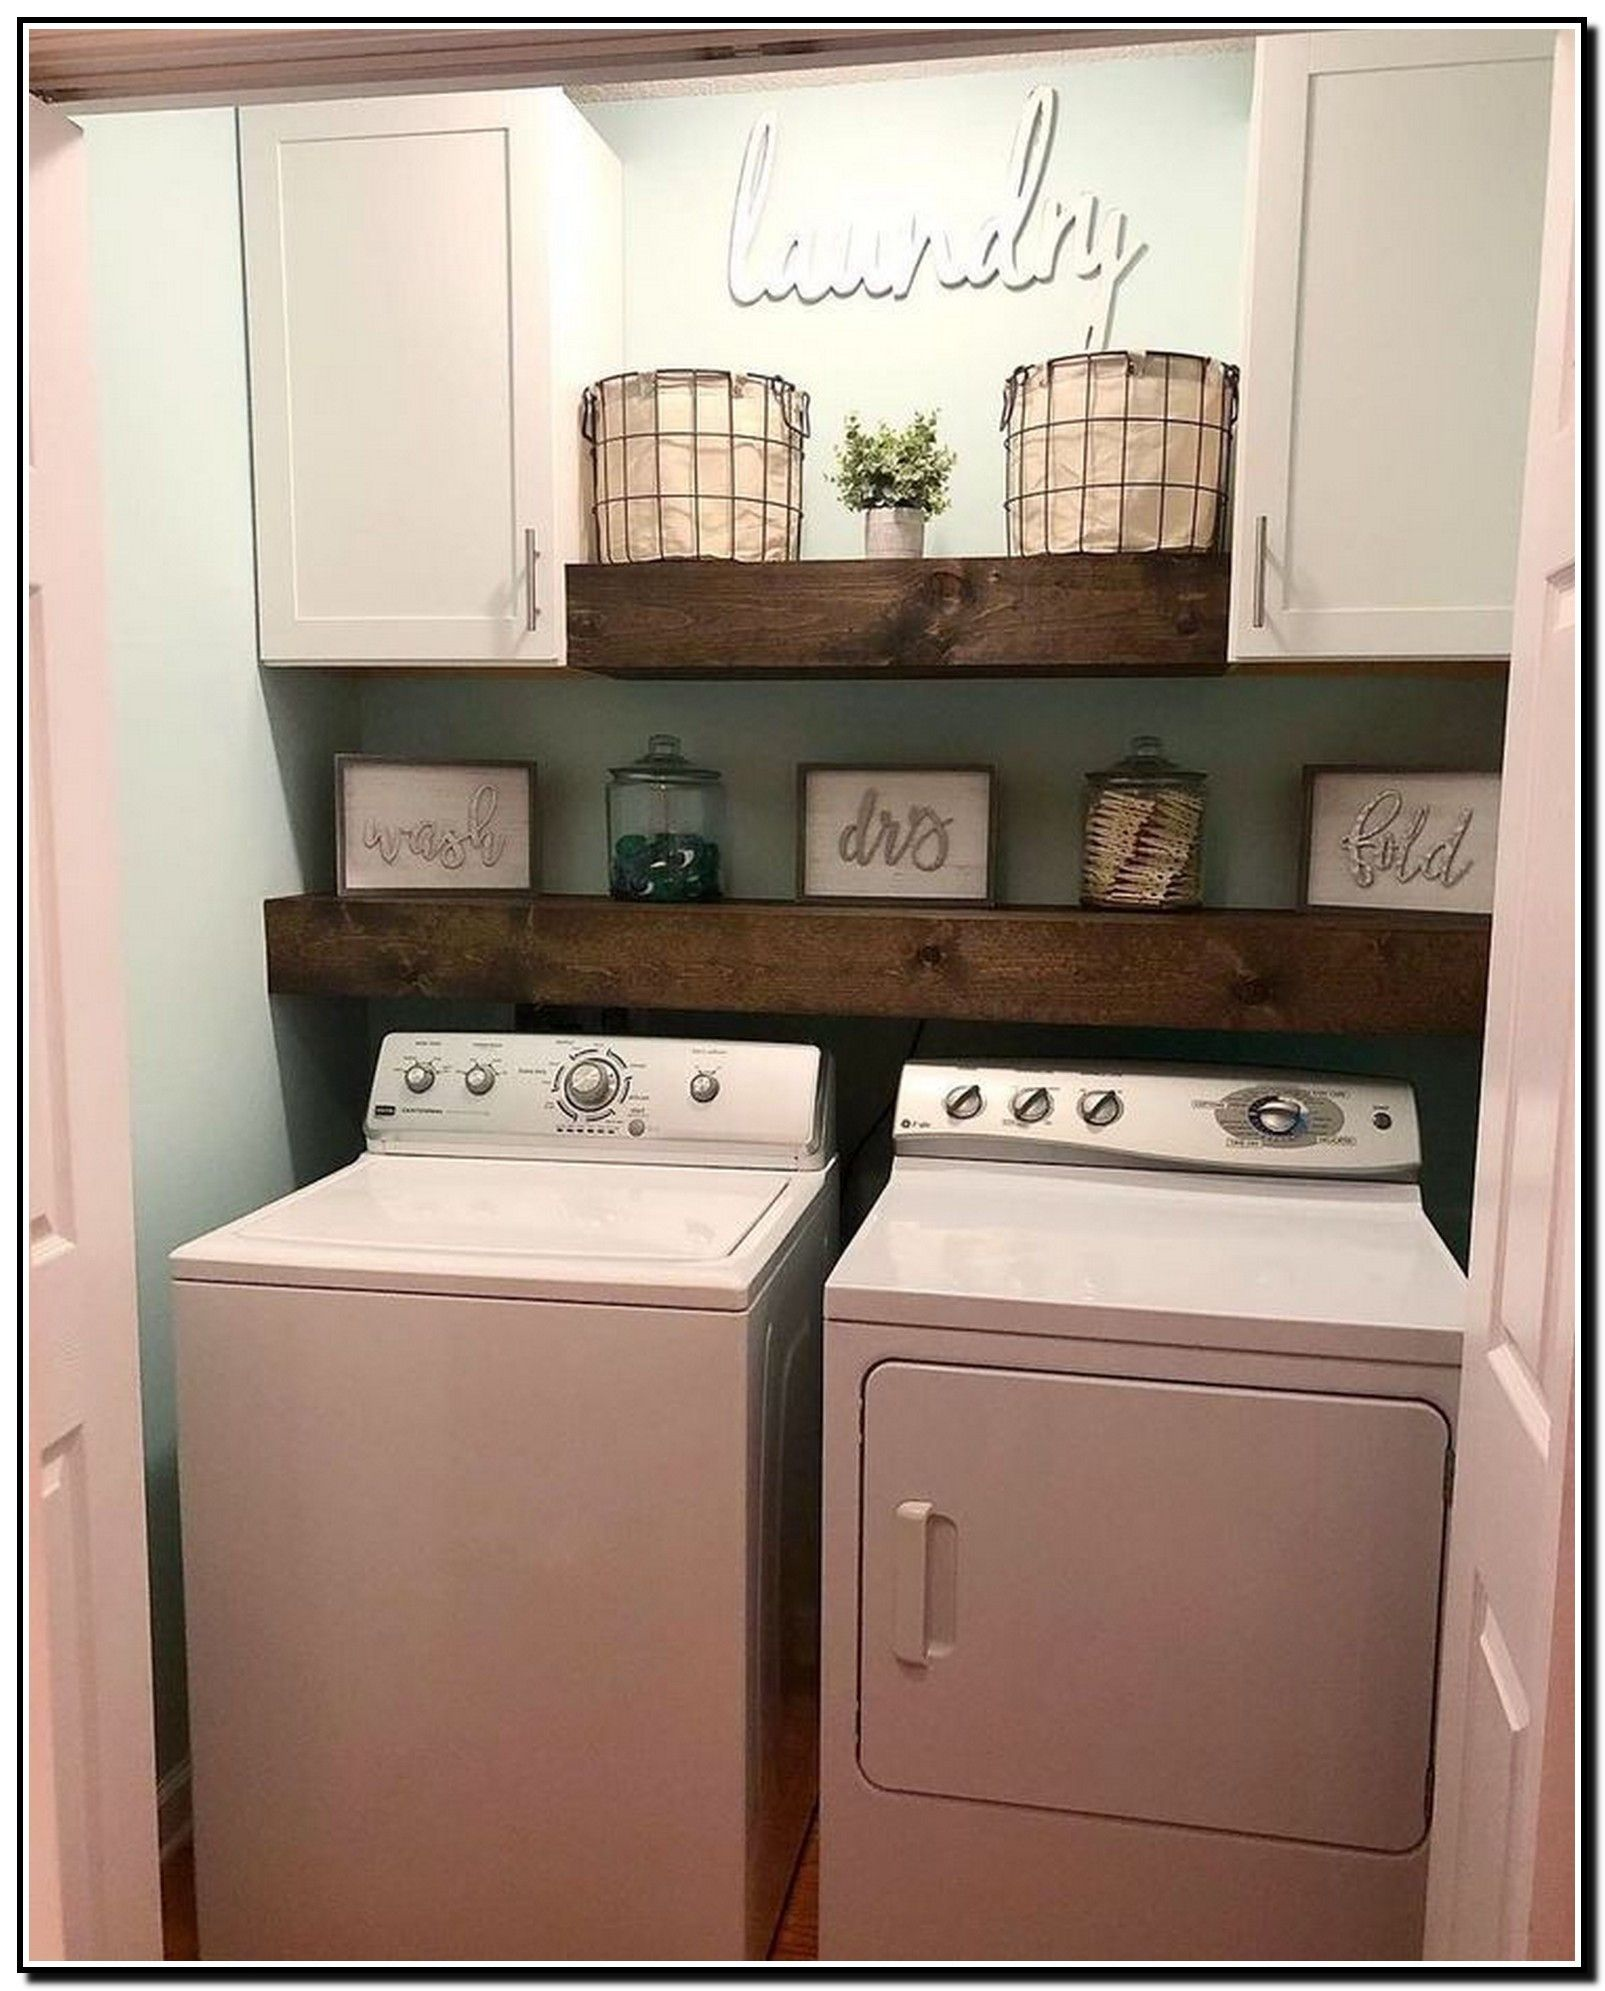 Laundry Rooms Ideas Small Spaces   Ecsac